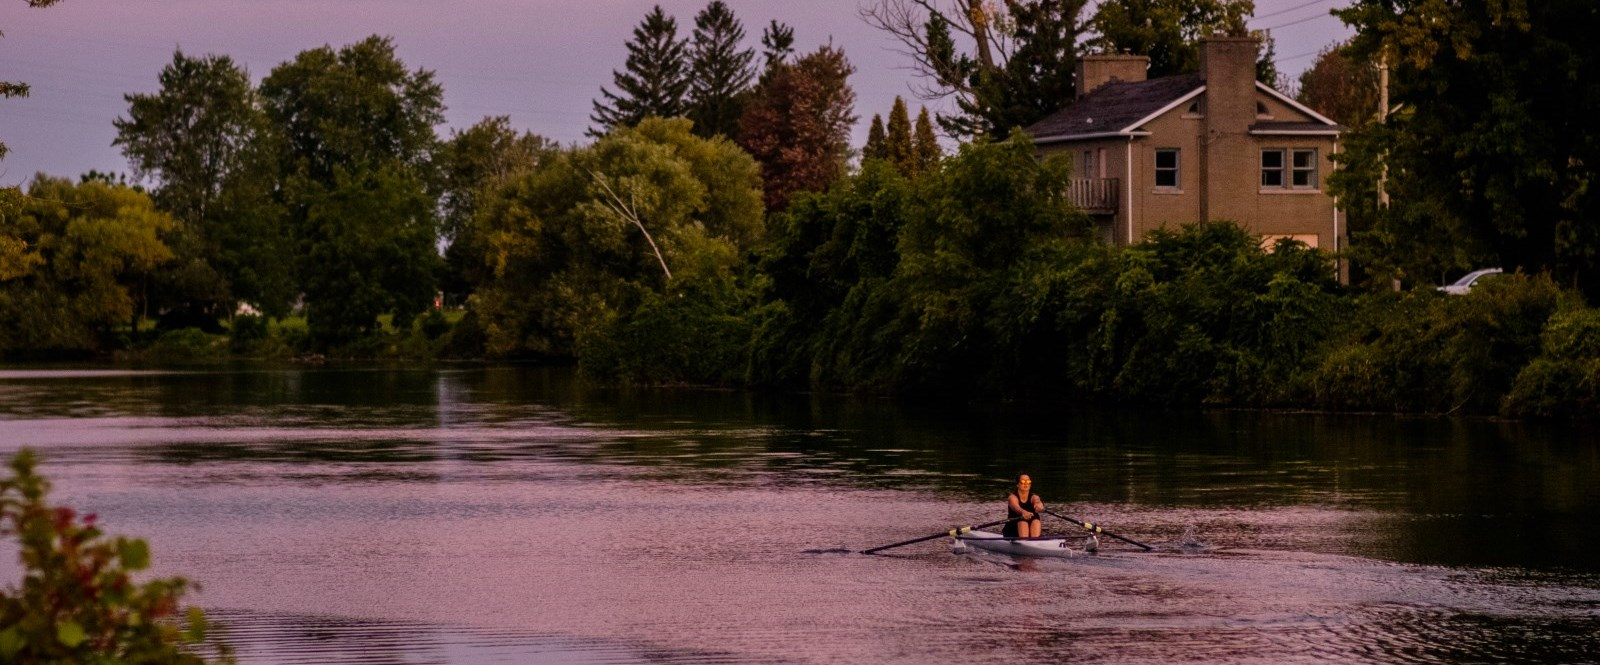 Rower on Cornwall Canal in sunset